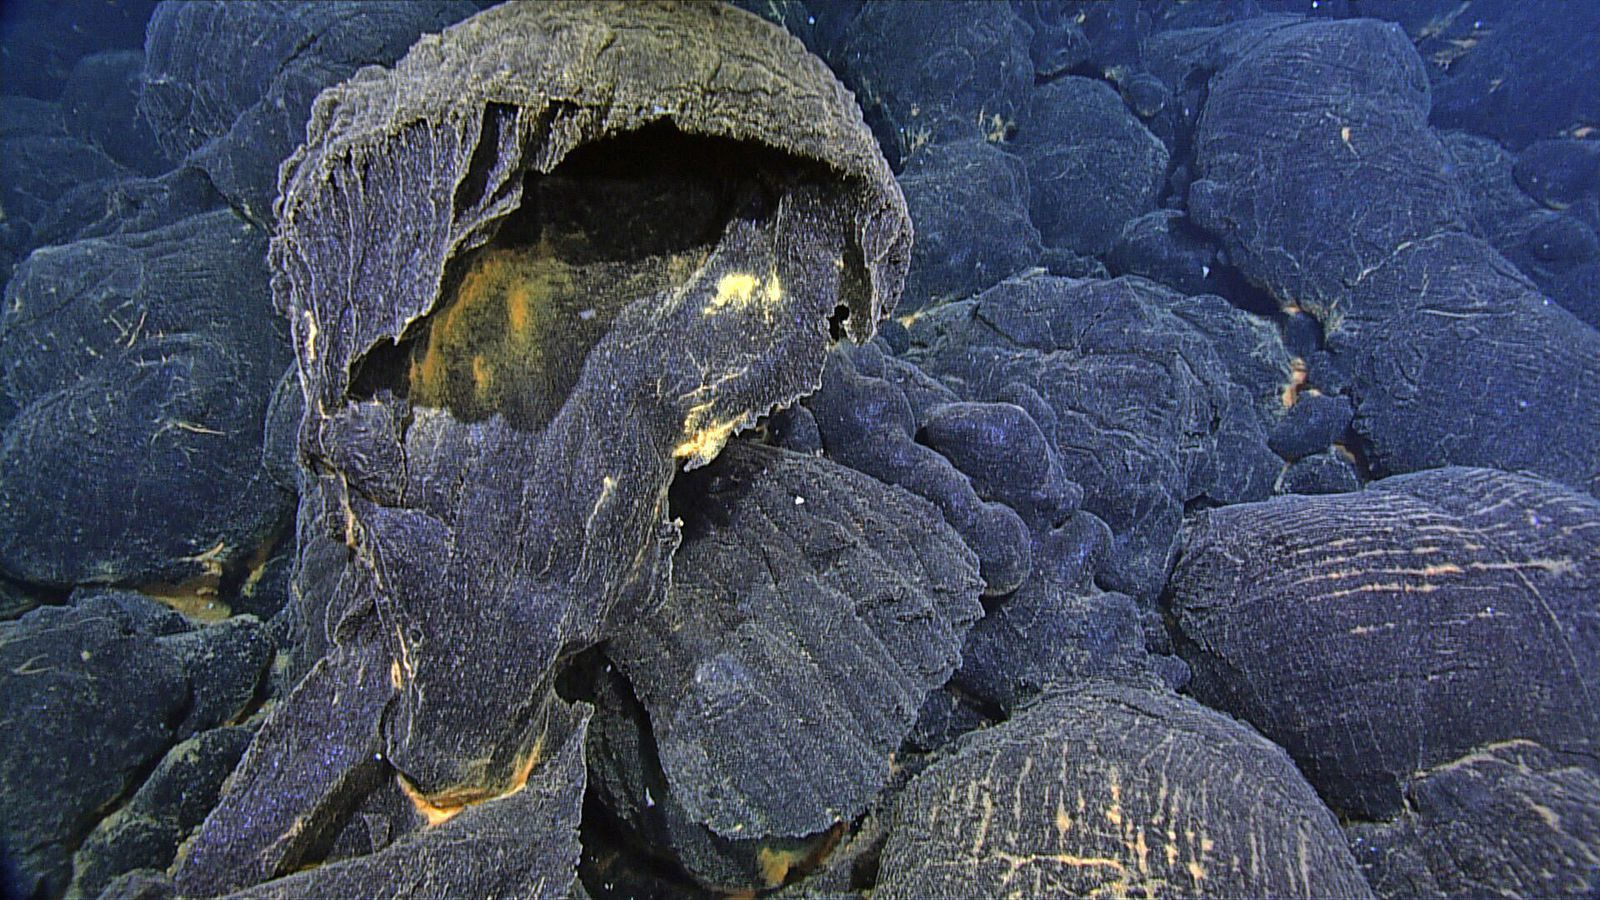 Axial seamount - pillow lavas exploded,dating from April 2015 eruption - one click to see full screen - doc. MBARI